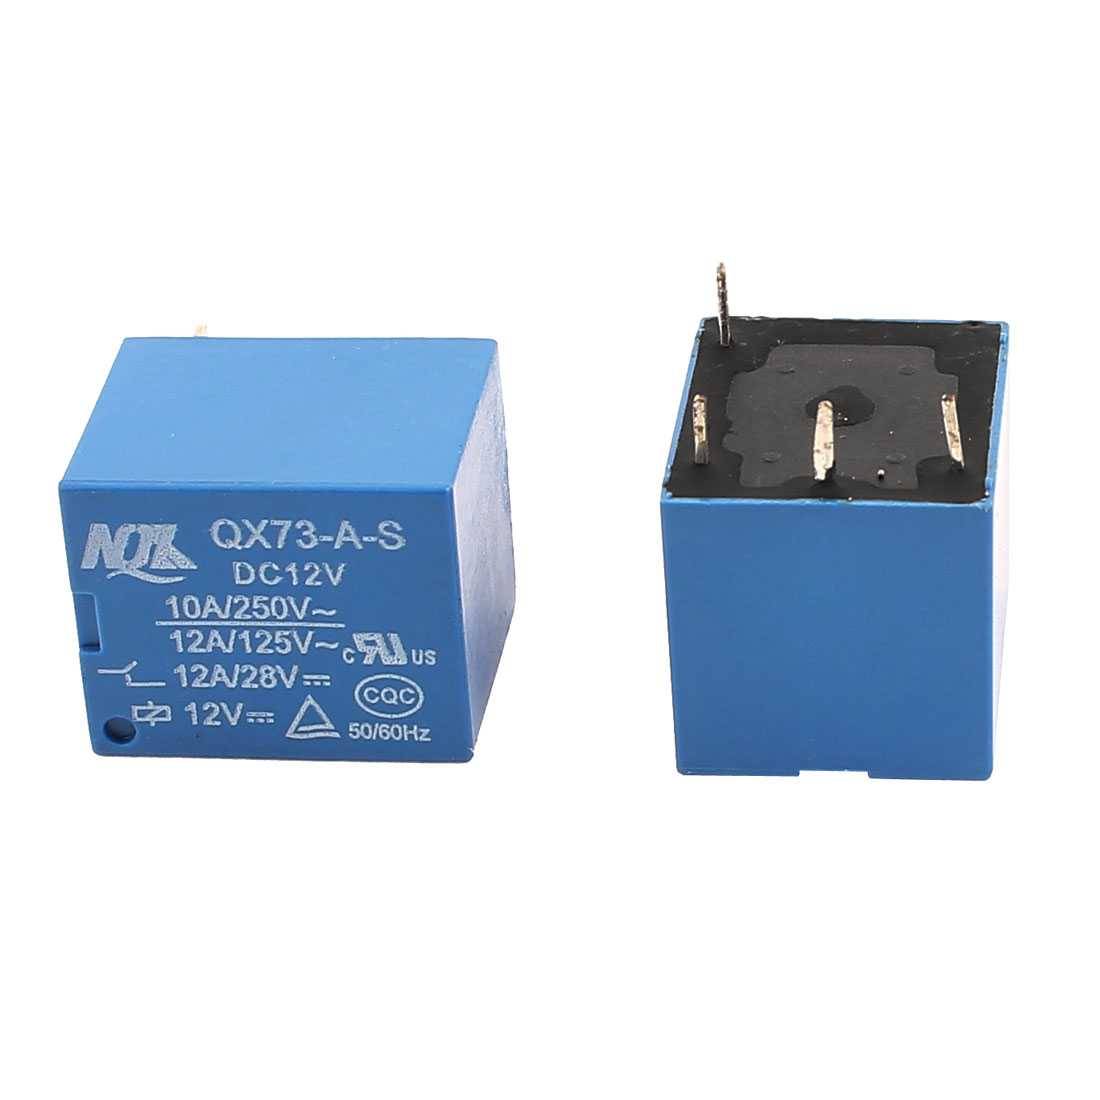 2 Pcs DC 12V 250VAC 10A 125VAC 12A 4 Terminals Vehicle Changeover Power Relay Blue